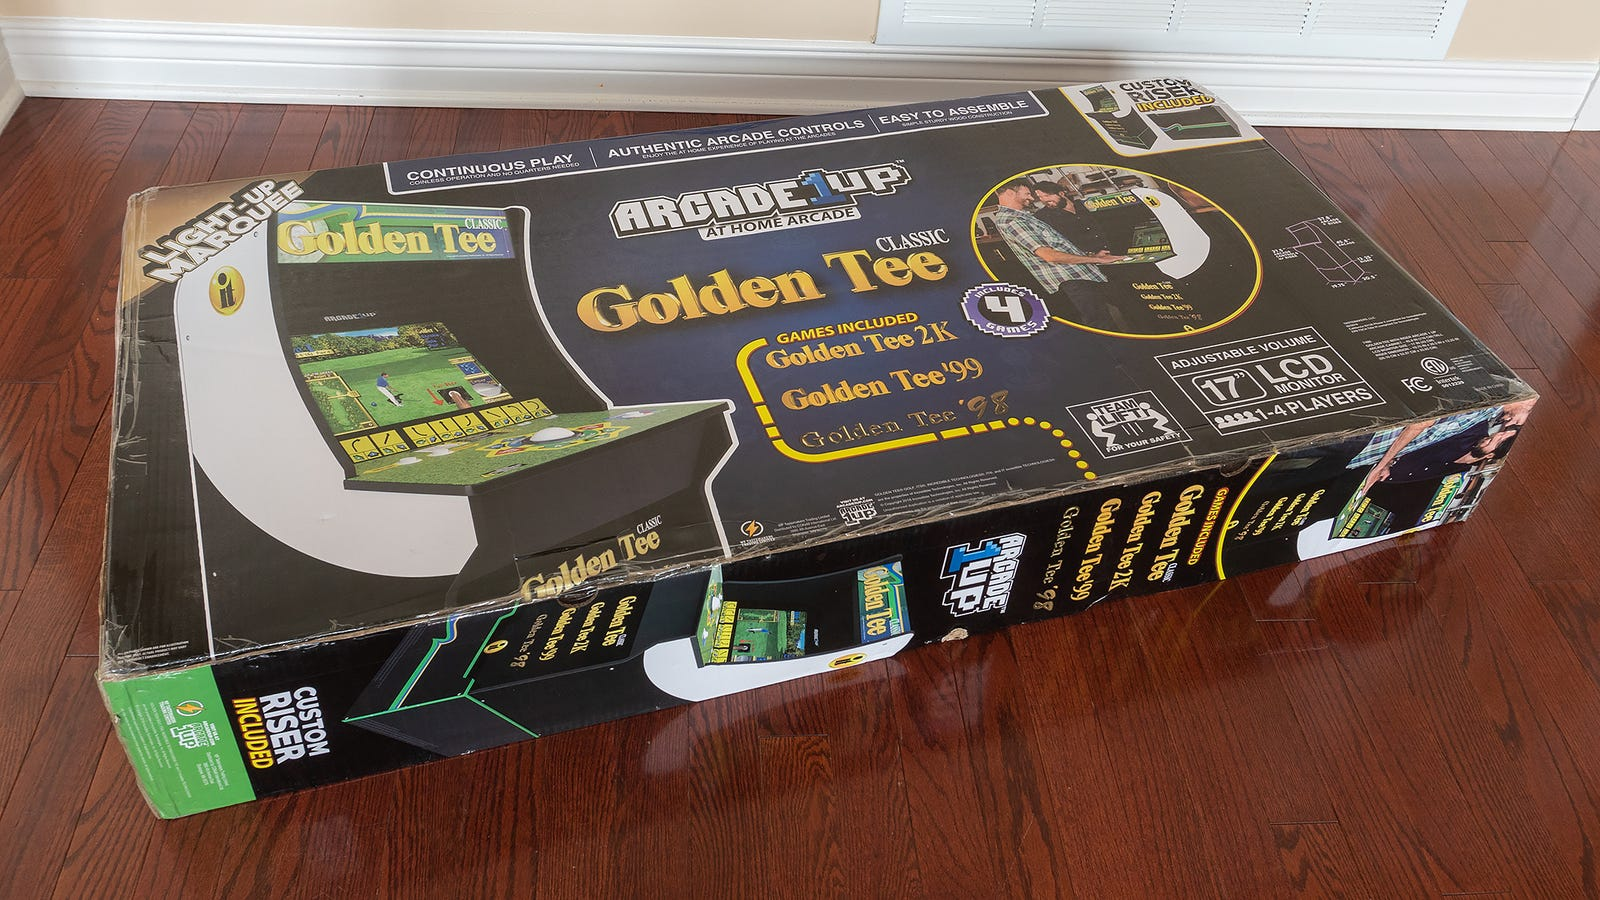 At 72-pounds The Golden Tee box isn't impossible to maneuver on your own, but a second person will make it a lot easy to carry and build